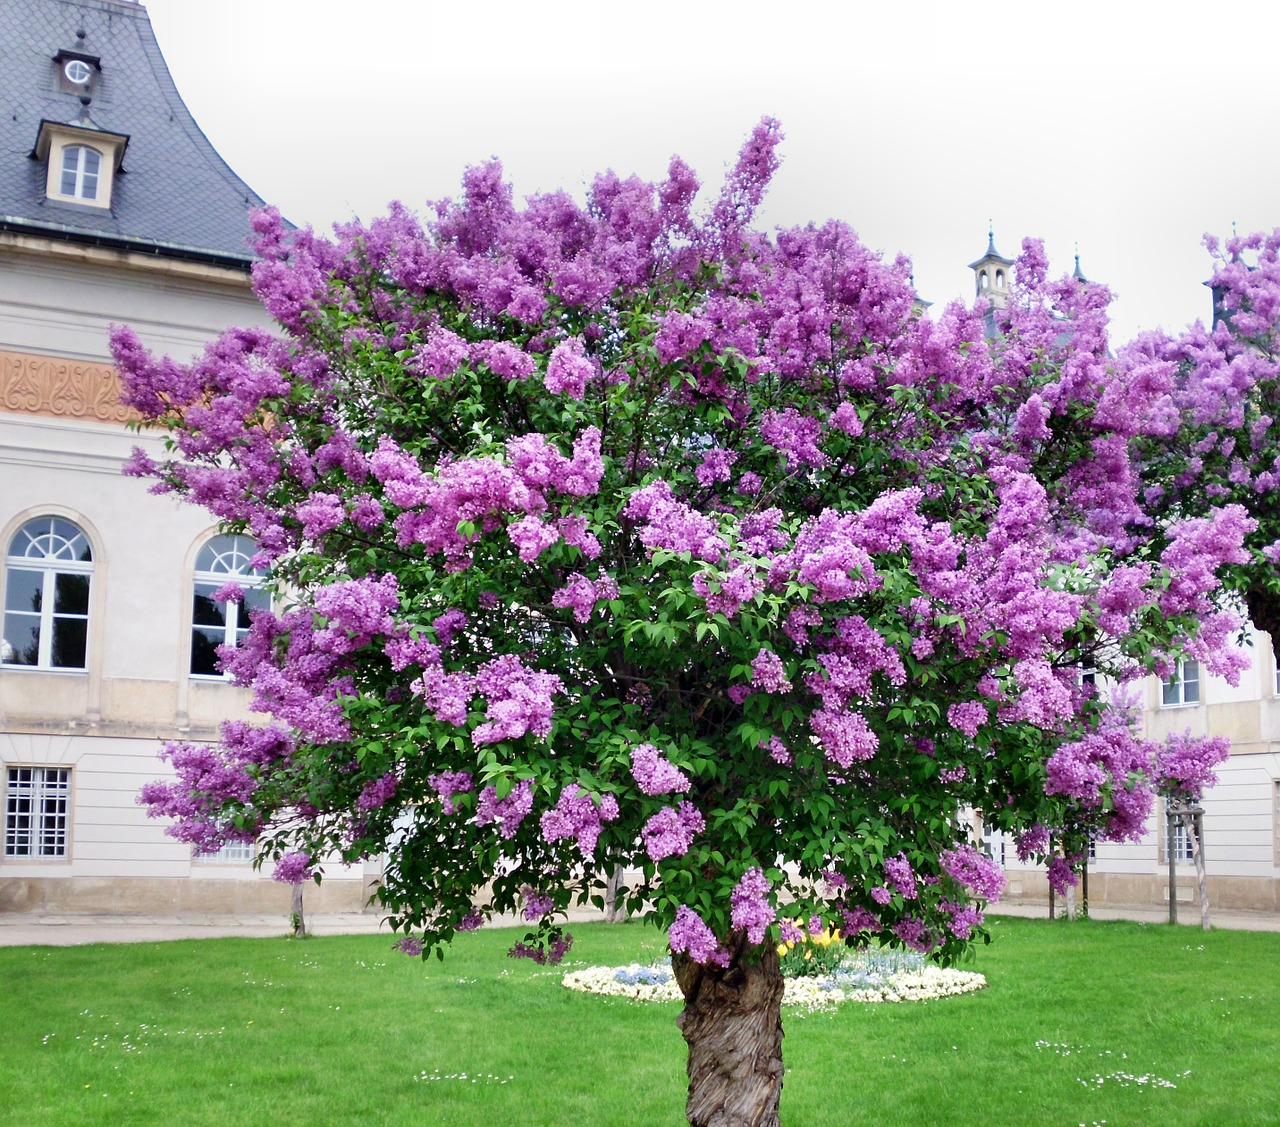 9 Helpful Tips for Growing a Beautiful Lilac Tree at Home